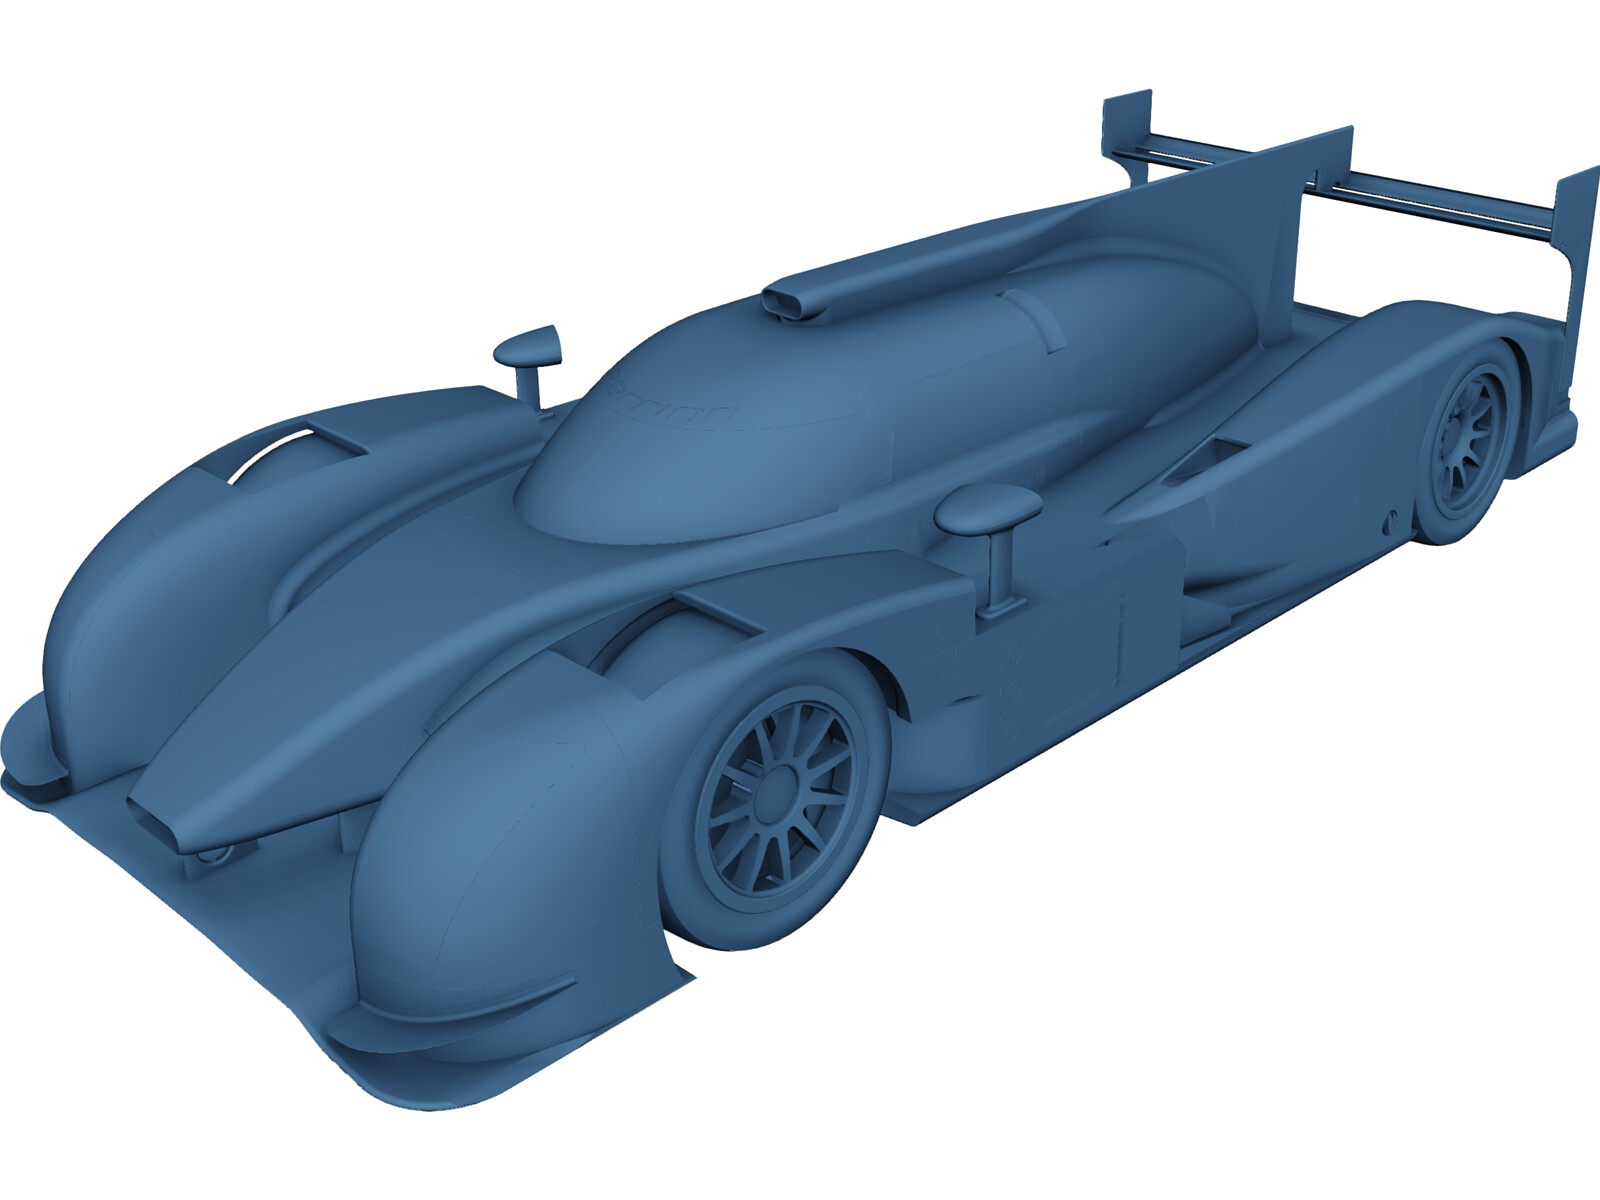 Perrinn lmp1 myp1 3d cad model 3d cad browser Cad models